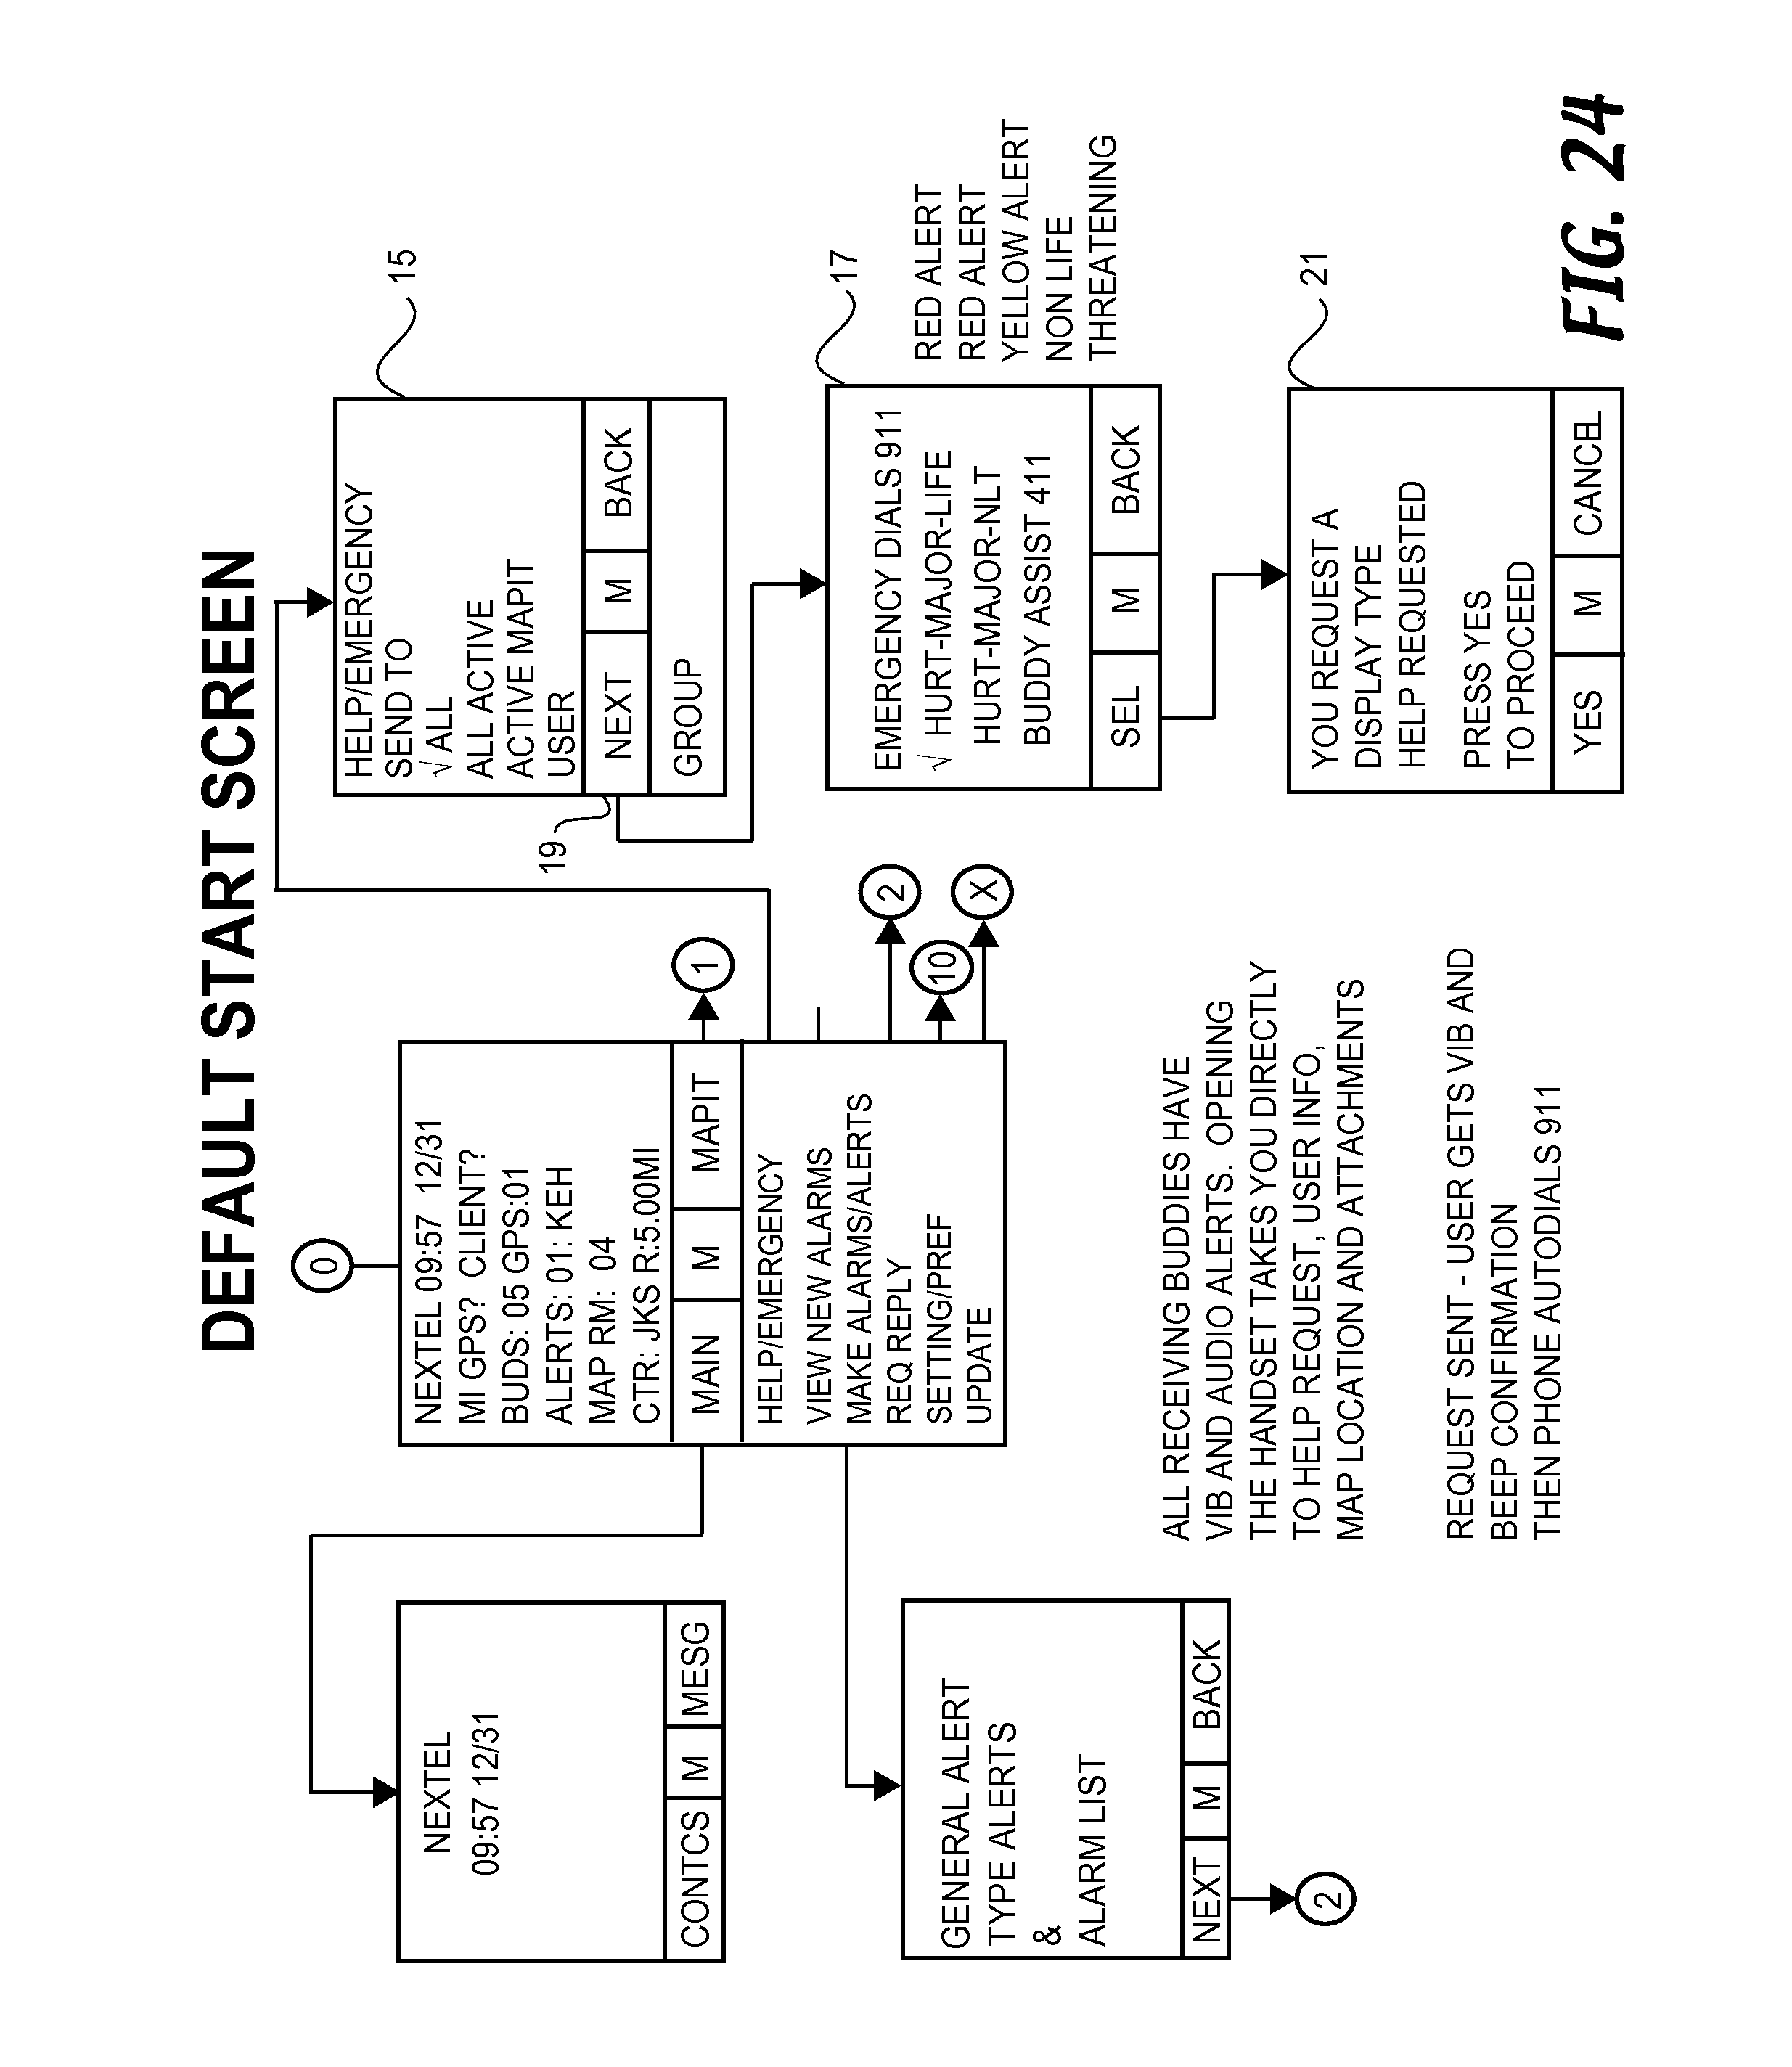 Us9615204b1 Techniques For Communication Within Closed Groups Of Installing Aeon Labs Micro Dimmer On 4way Circuit Connected Things Mobile Devices Google Patents